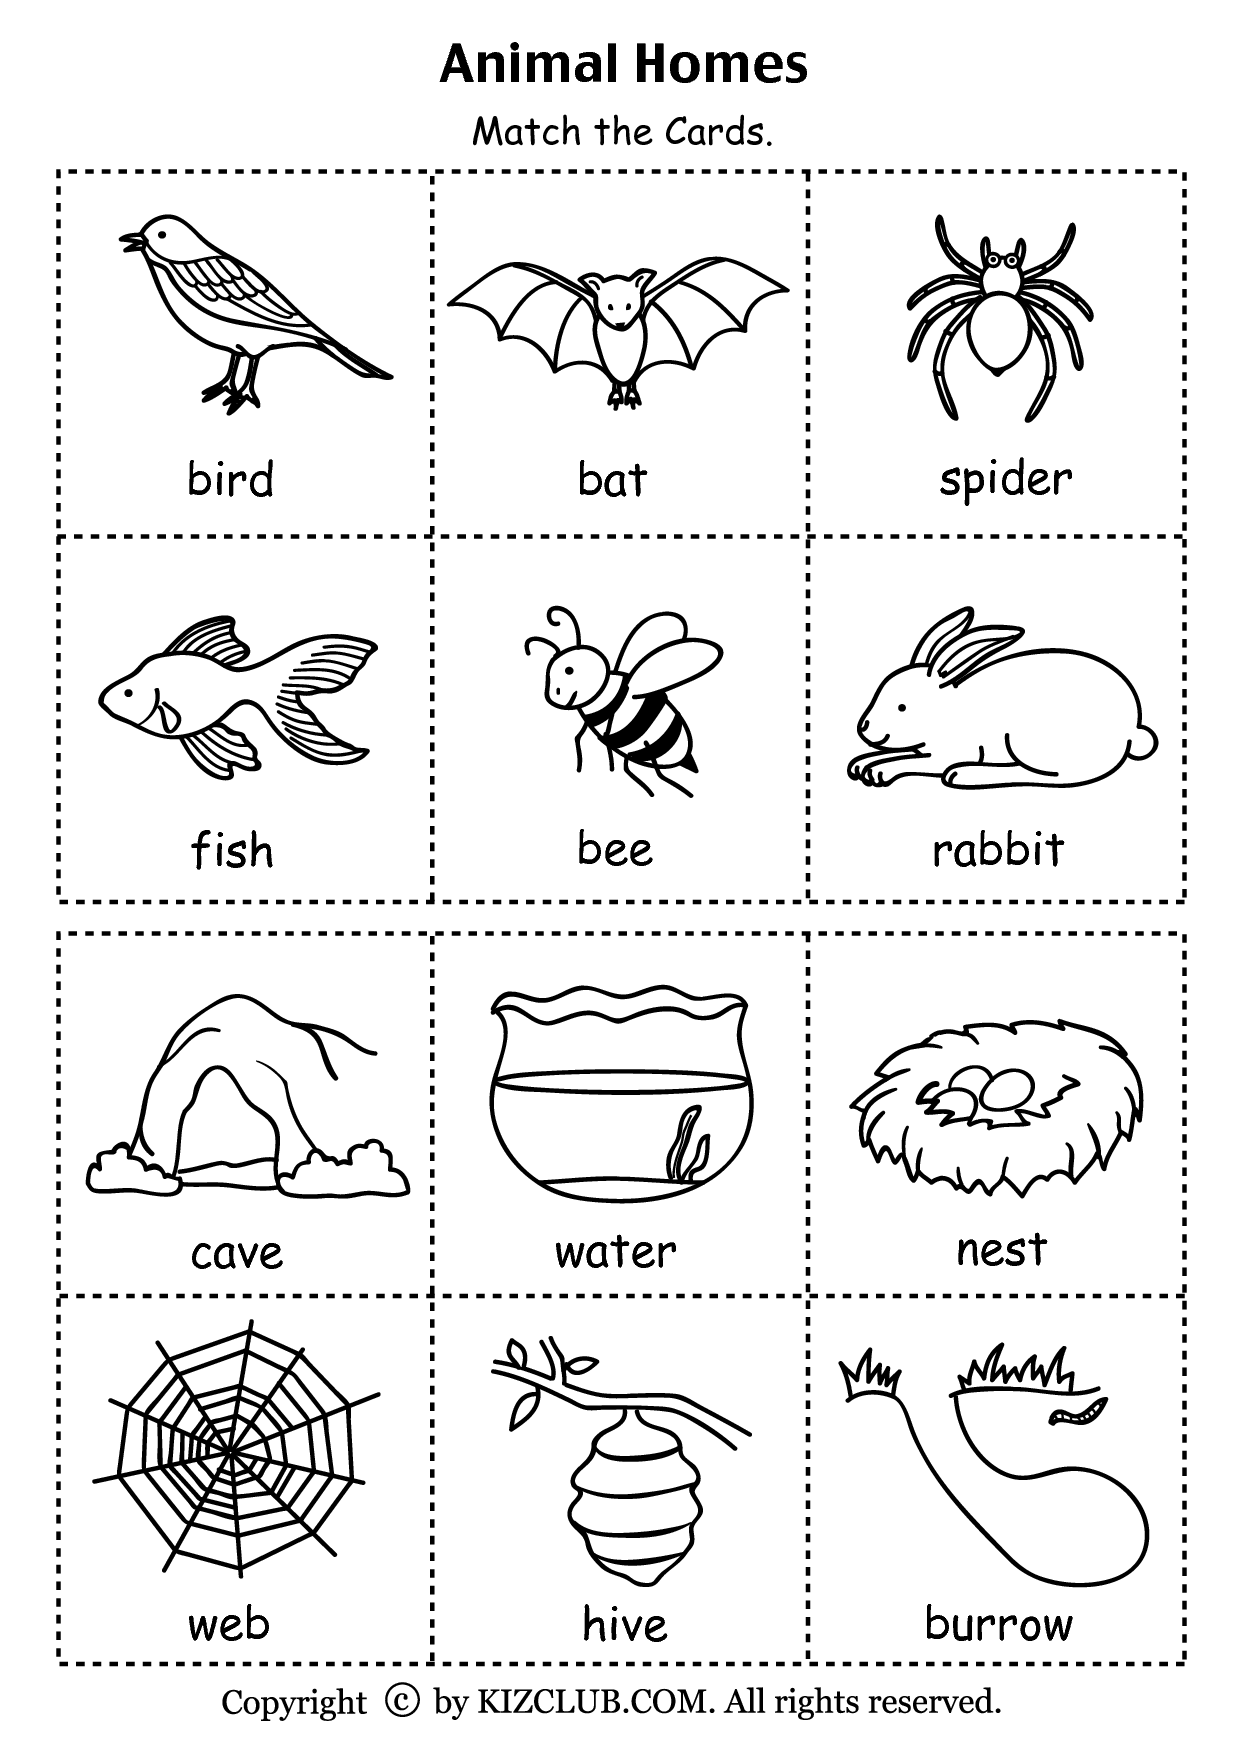 medium resolution of e7fd5cd0f7f52b7f5fcd16356481788f.jpg (1240×1754)   Preschool science